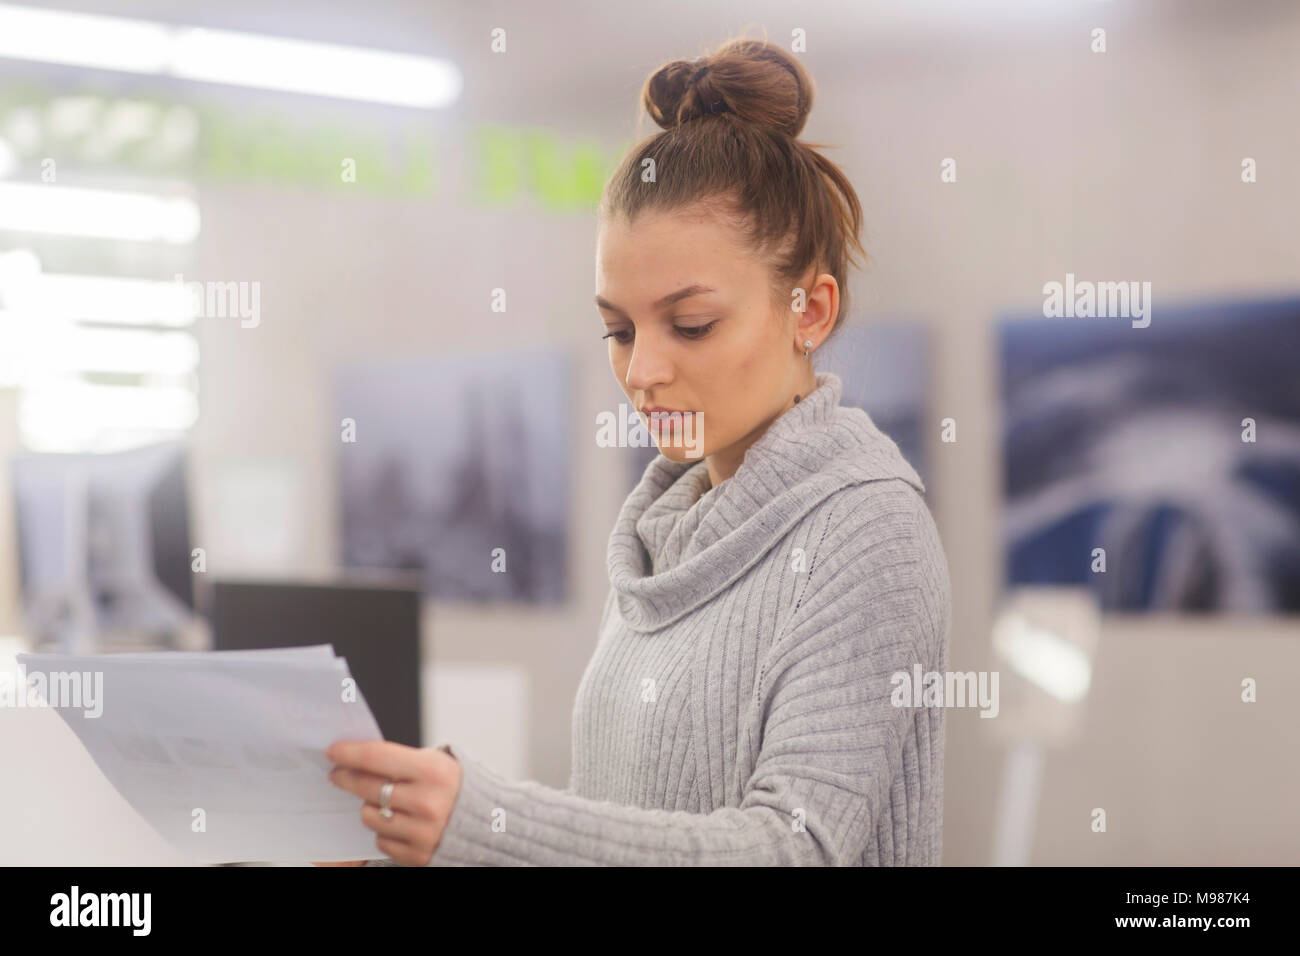 Portrait of young woman at work in an office - Stock Image